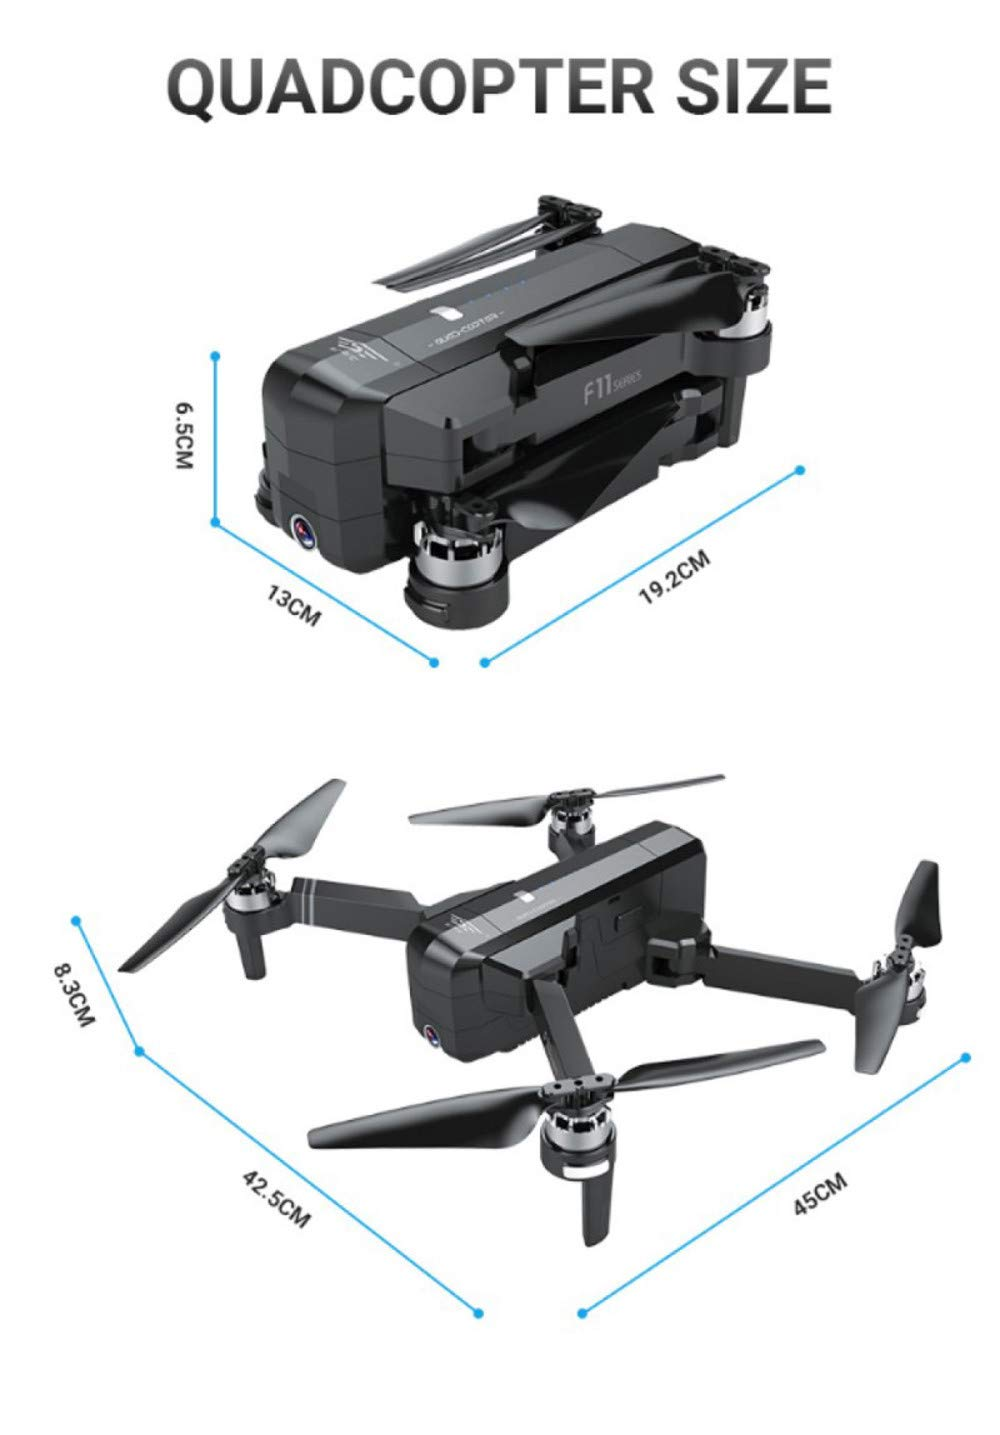 Cywulin RC Quadcopter Foldable Drone 1080P HD 5G WiFi FPV Camera Live Video, Brushless Motor, GPS Auto Return Home, Follow Me, Long Control Range, Altitude Hold, Intelligent Modular Battery (Black) by Cywulin (Image #6)